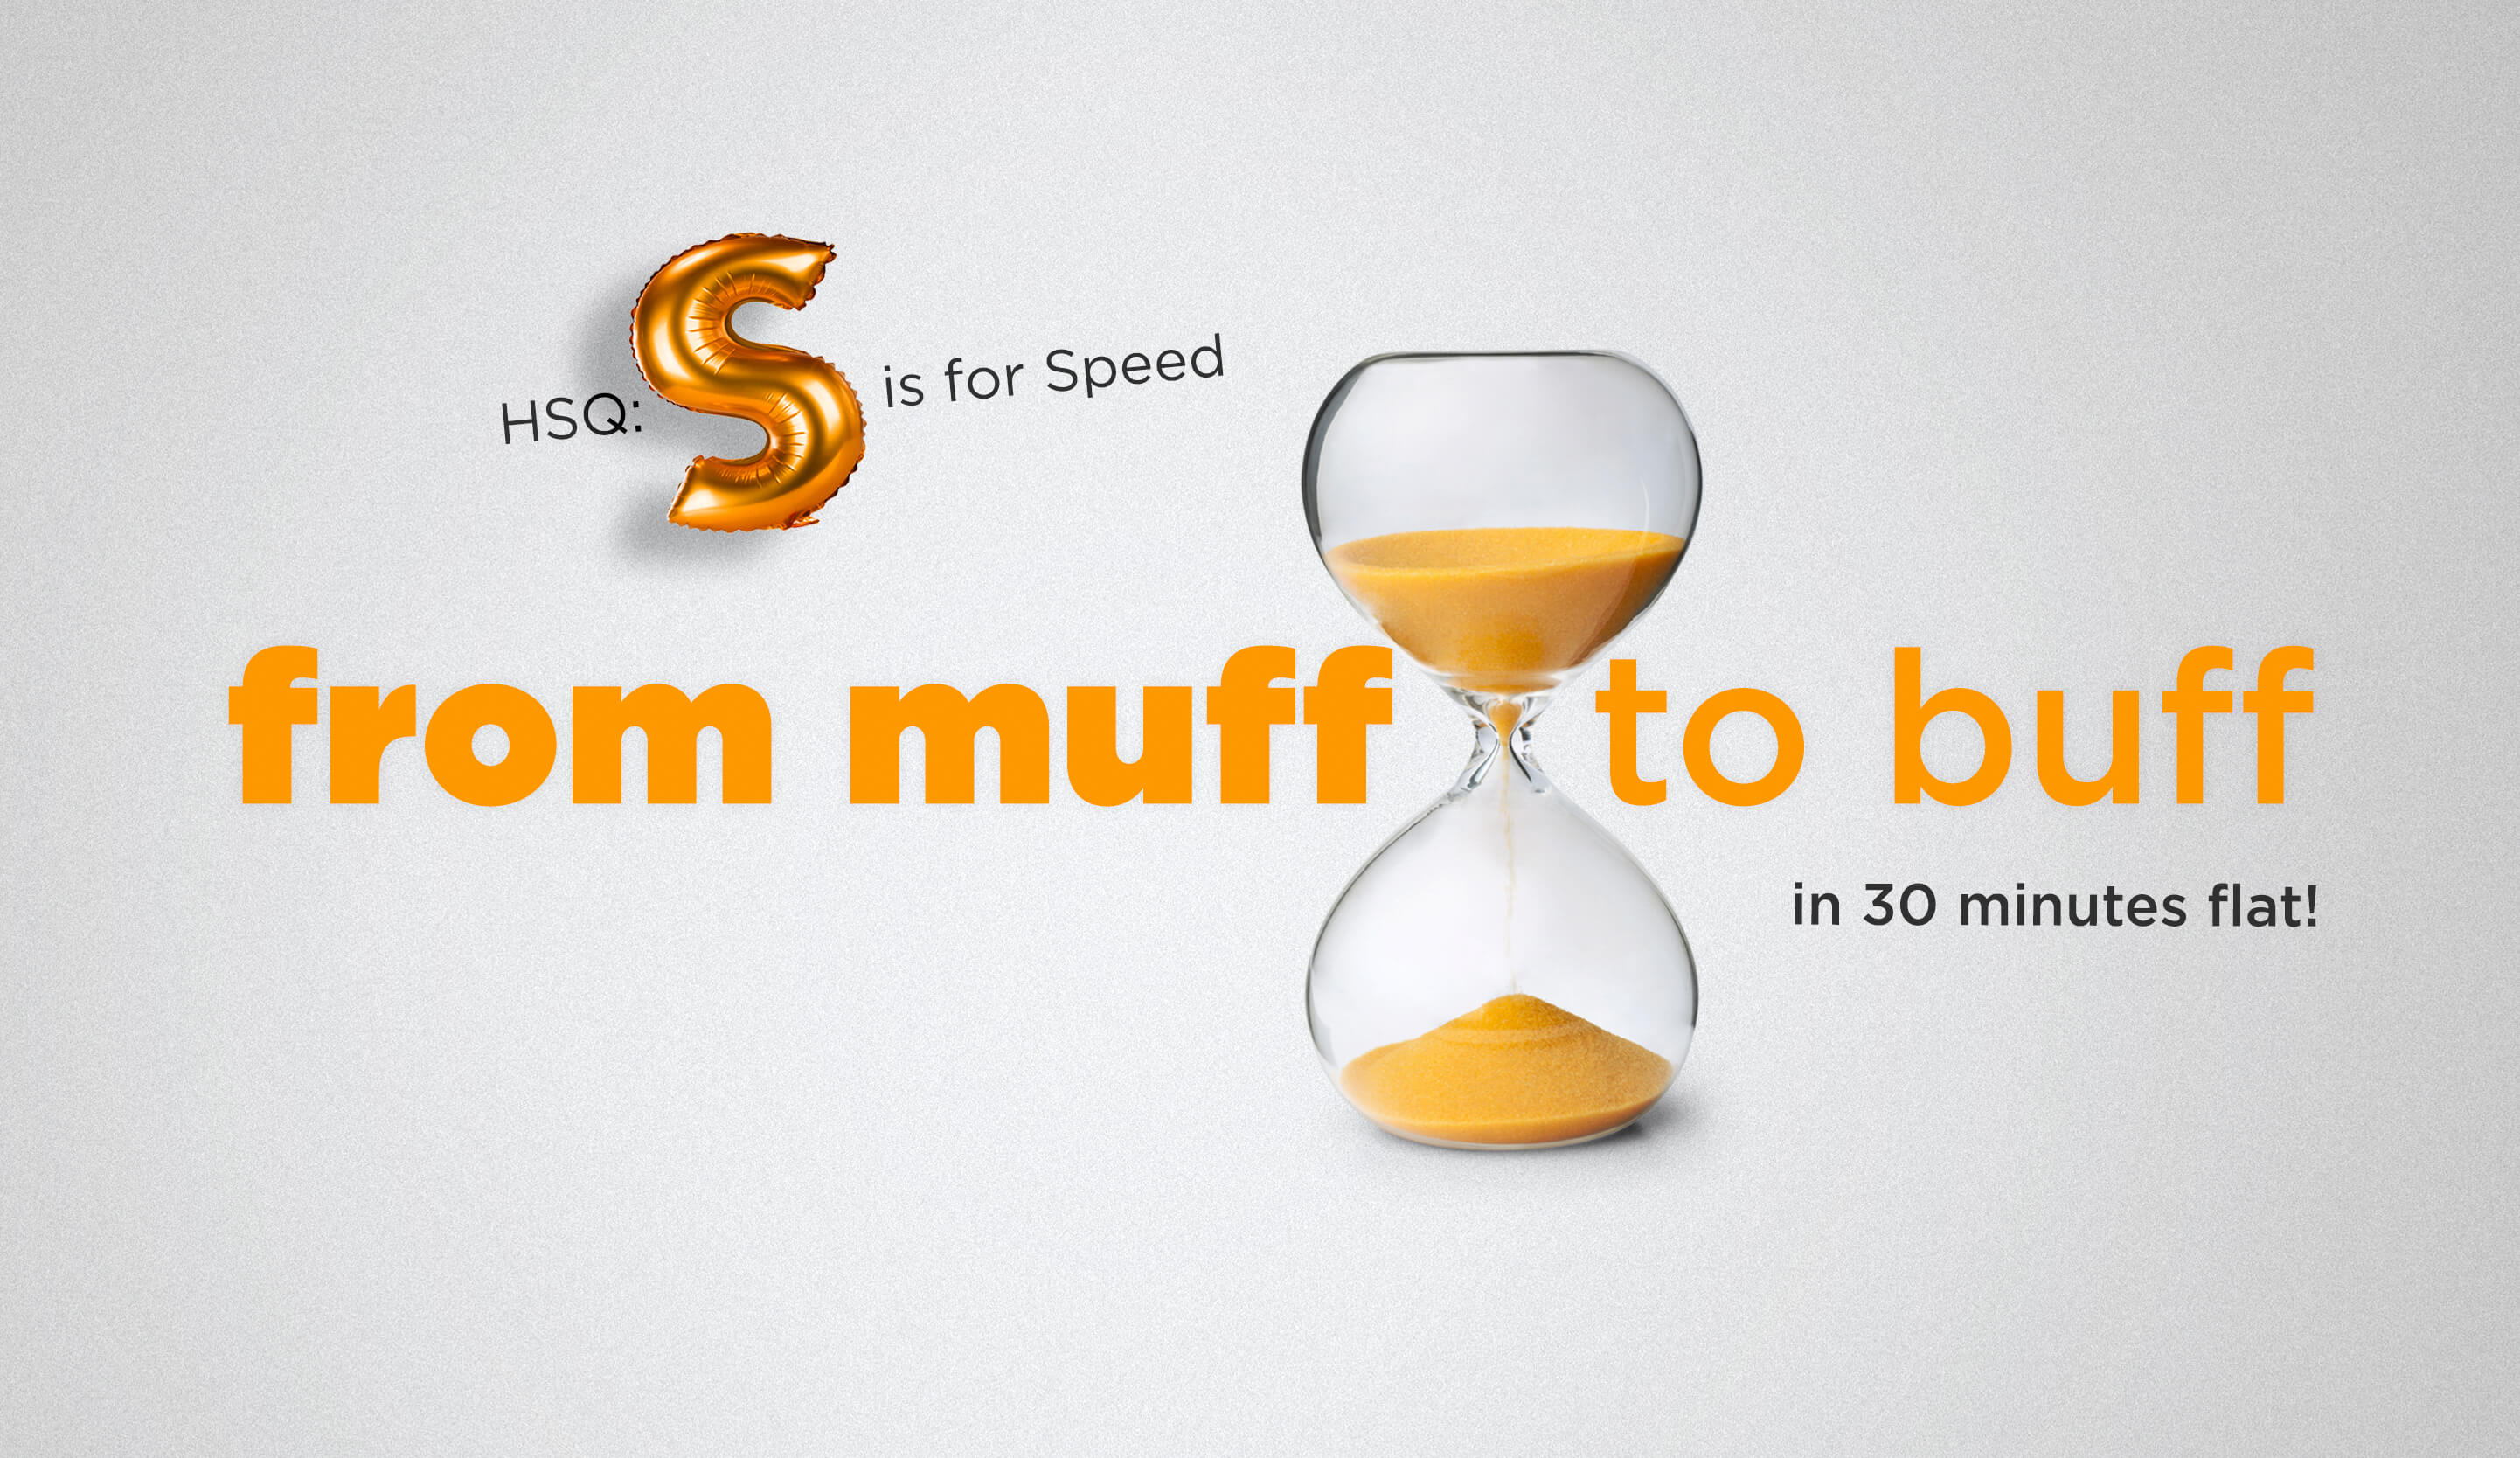 From muff to buff in 30 minutes flat!